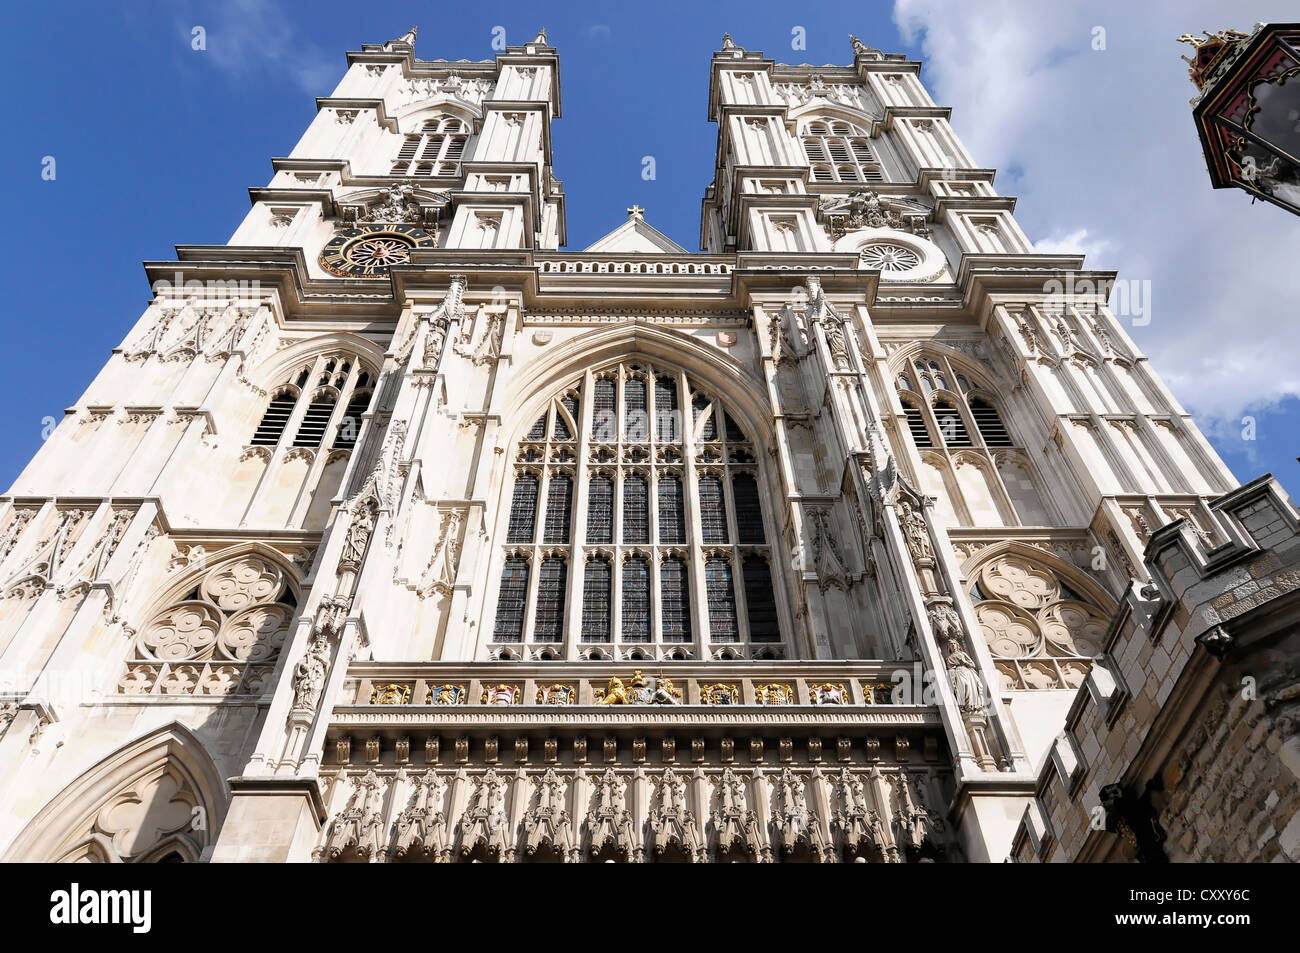 The twin towers of Westminster Abbey, London, England, United Kingdom, Europe - Stock Image